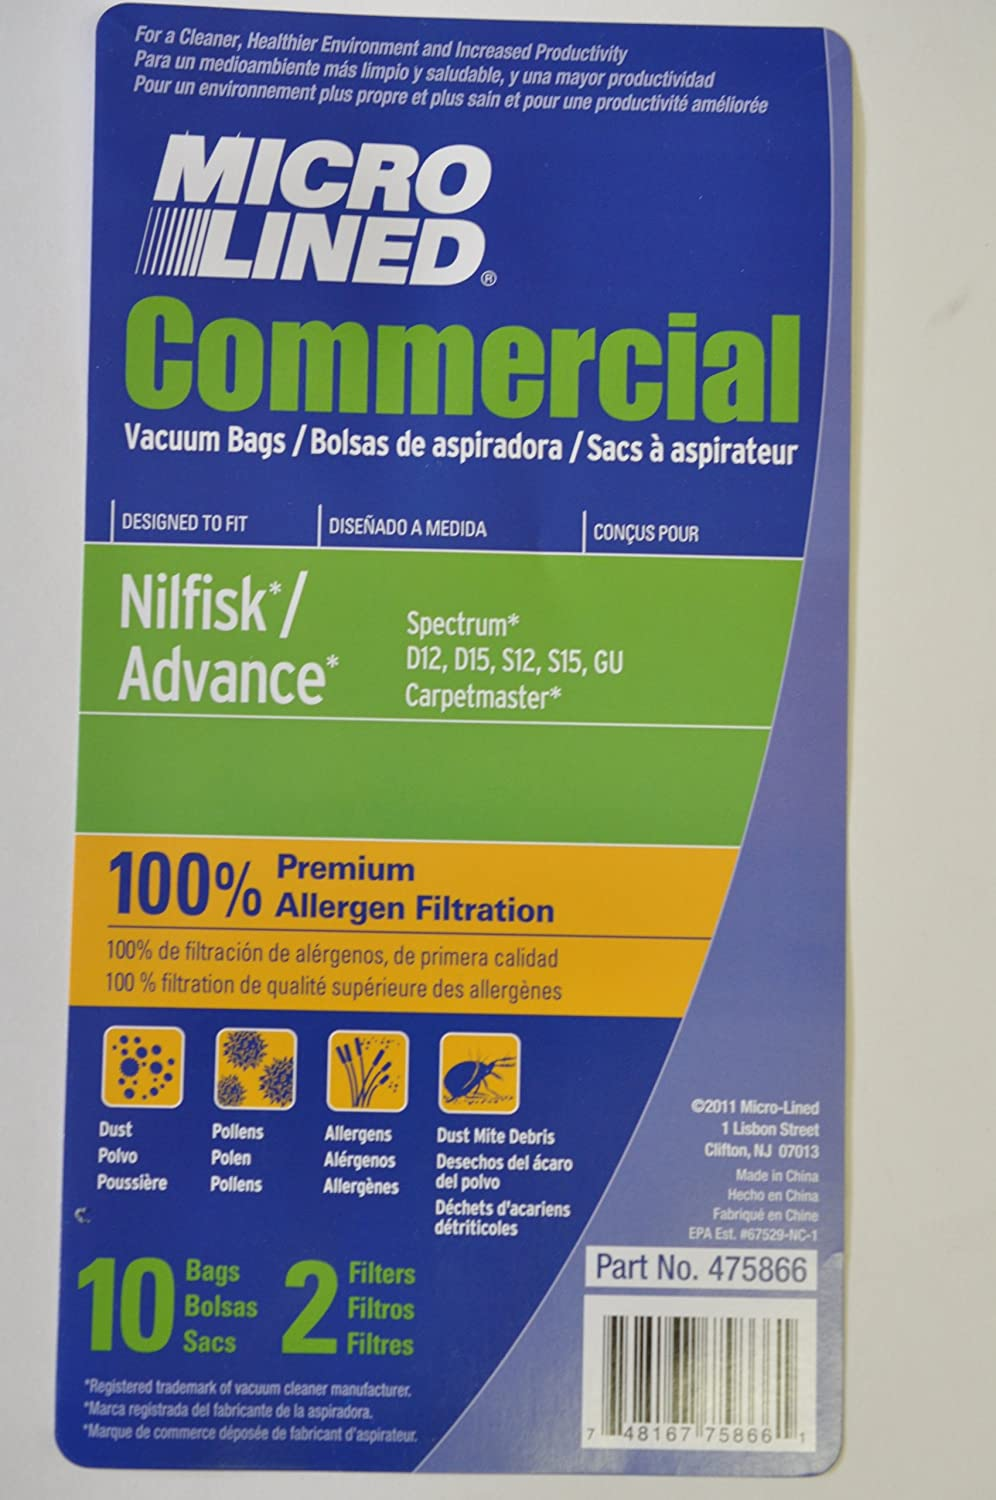 10 Nilfisk/Advance MicroLined Premuim Allergen Vacuum Bags AND 2 Filters. Fits Spectrum D12, D15, S12, S15, GU and Carpetmaster (10 bags/2 filters)